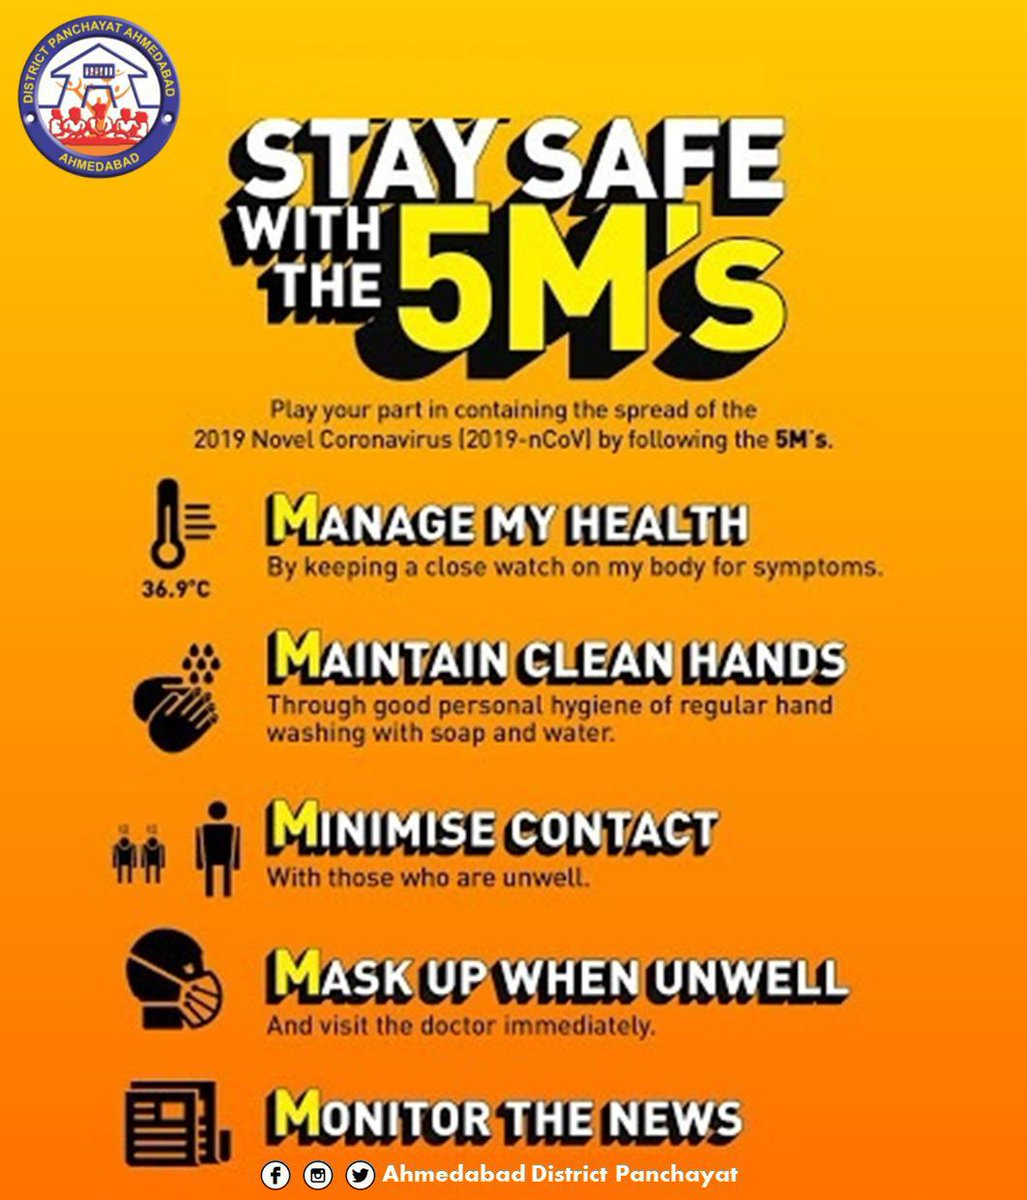 Stay safe with this 5Ms #AhmedabadFightsCorona #COVID19pic.twitter.com/XInI3Ho4Jp